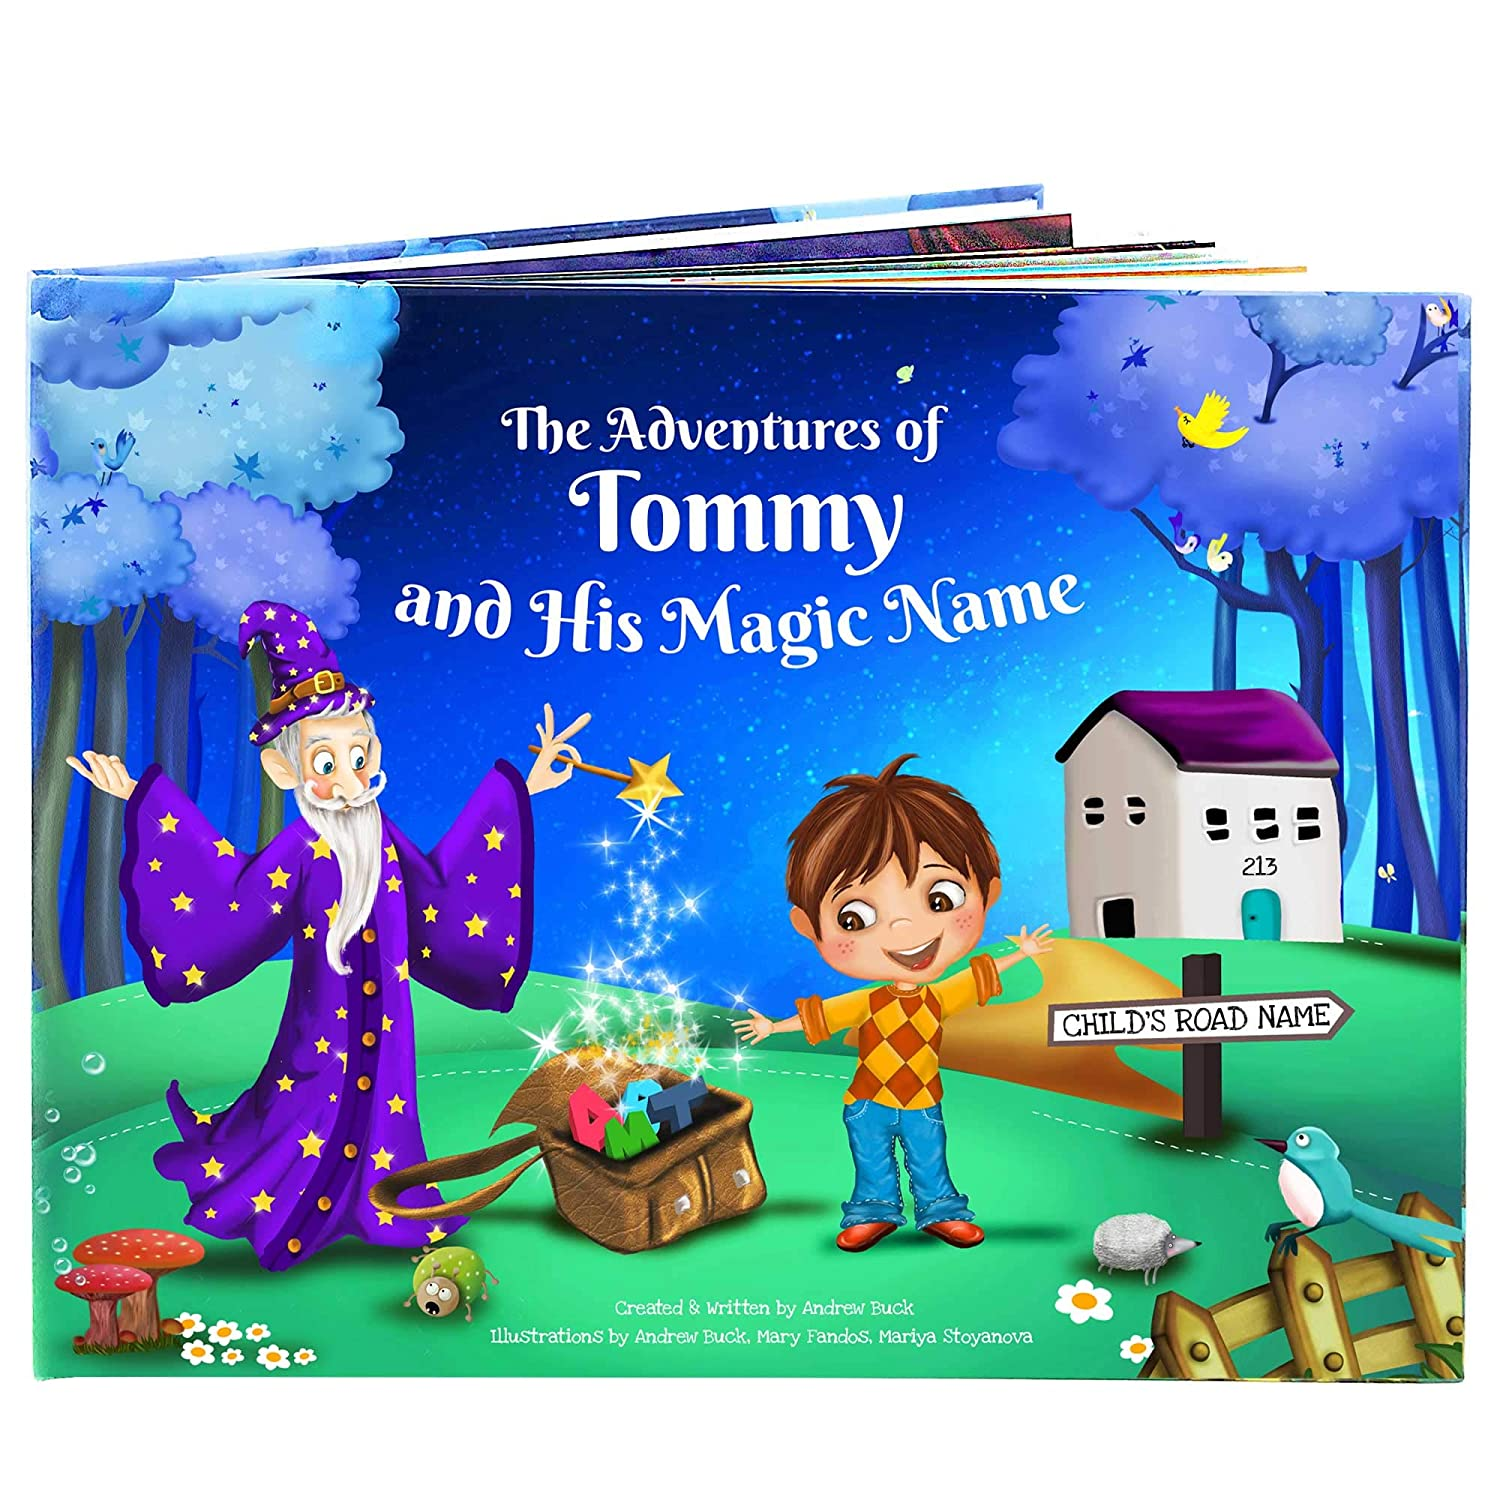 Personalised Book for Kids - Handmade - A Unique Keepsake Story Book Based on the Letters of a Child' s Name